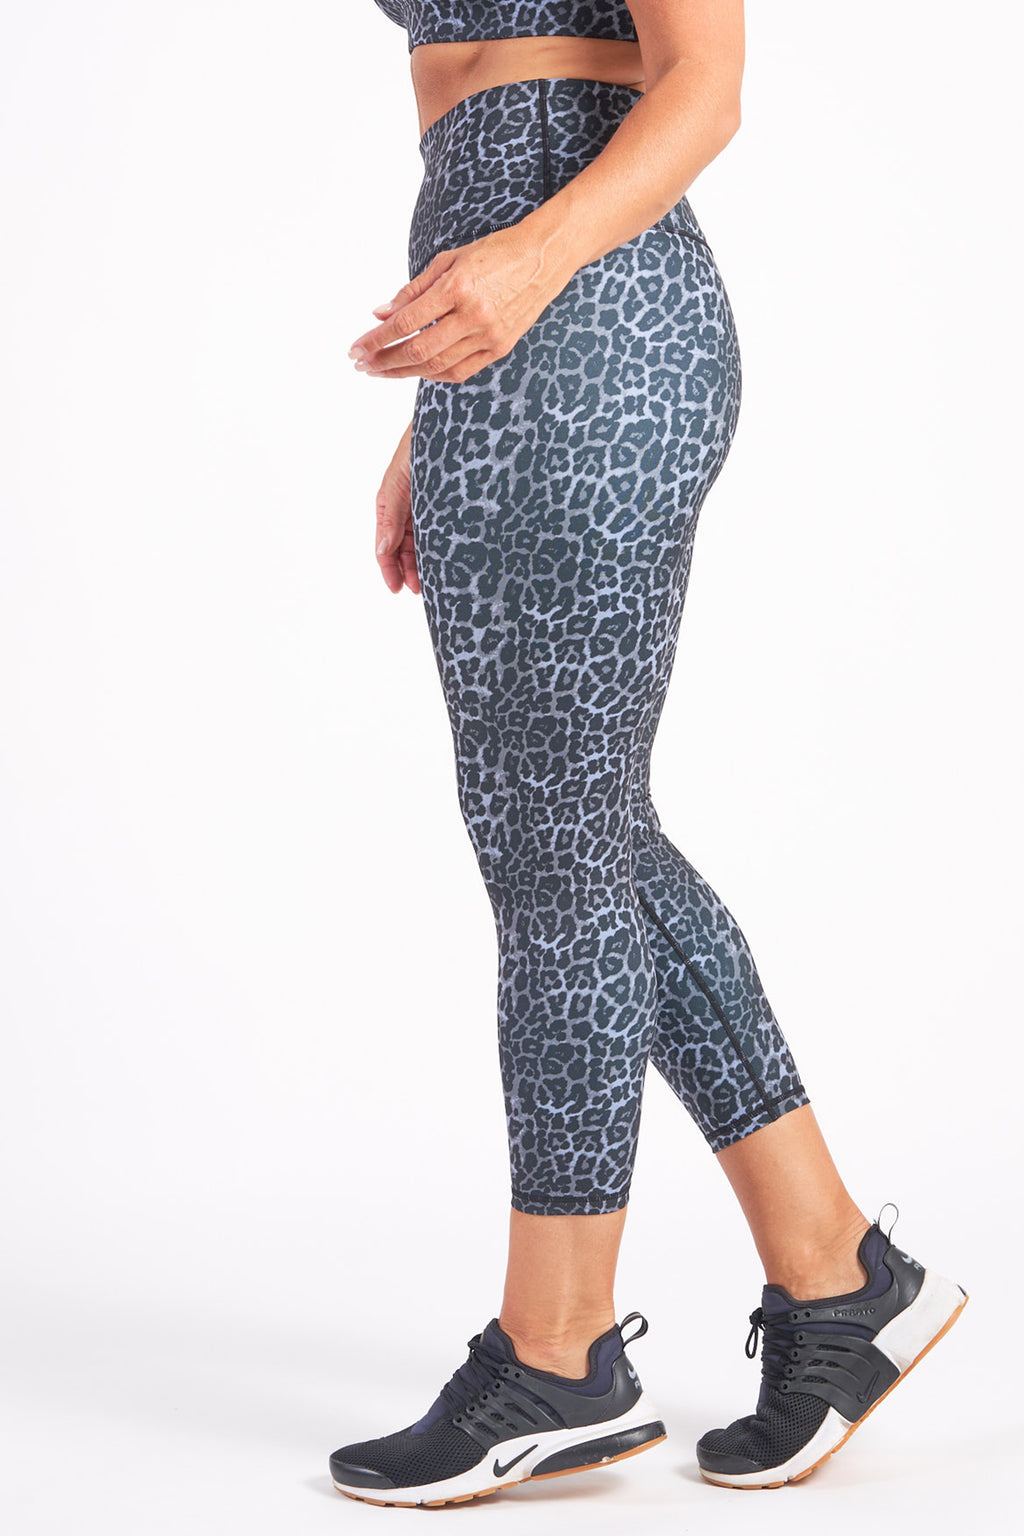 womens-exercise-tights-grey-leopard-large-side